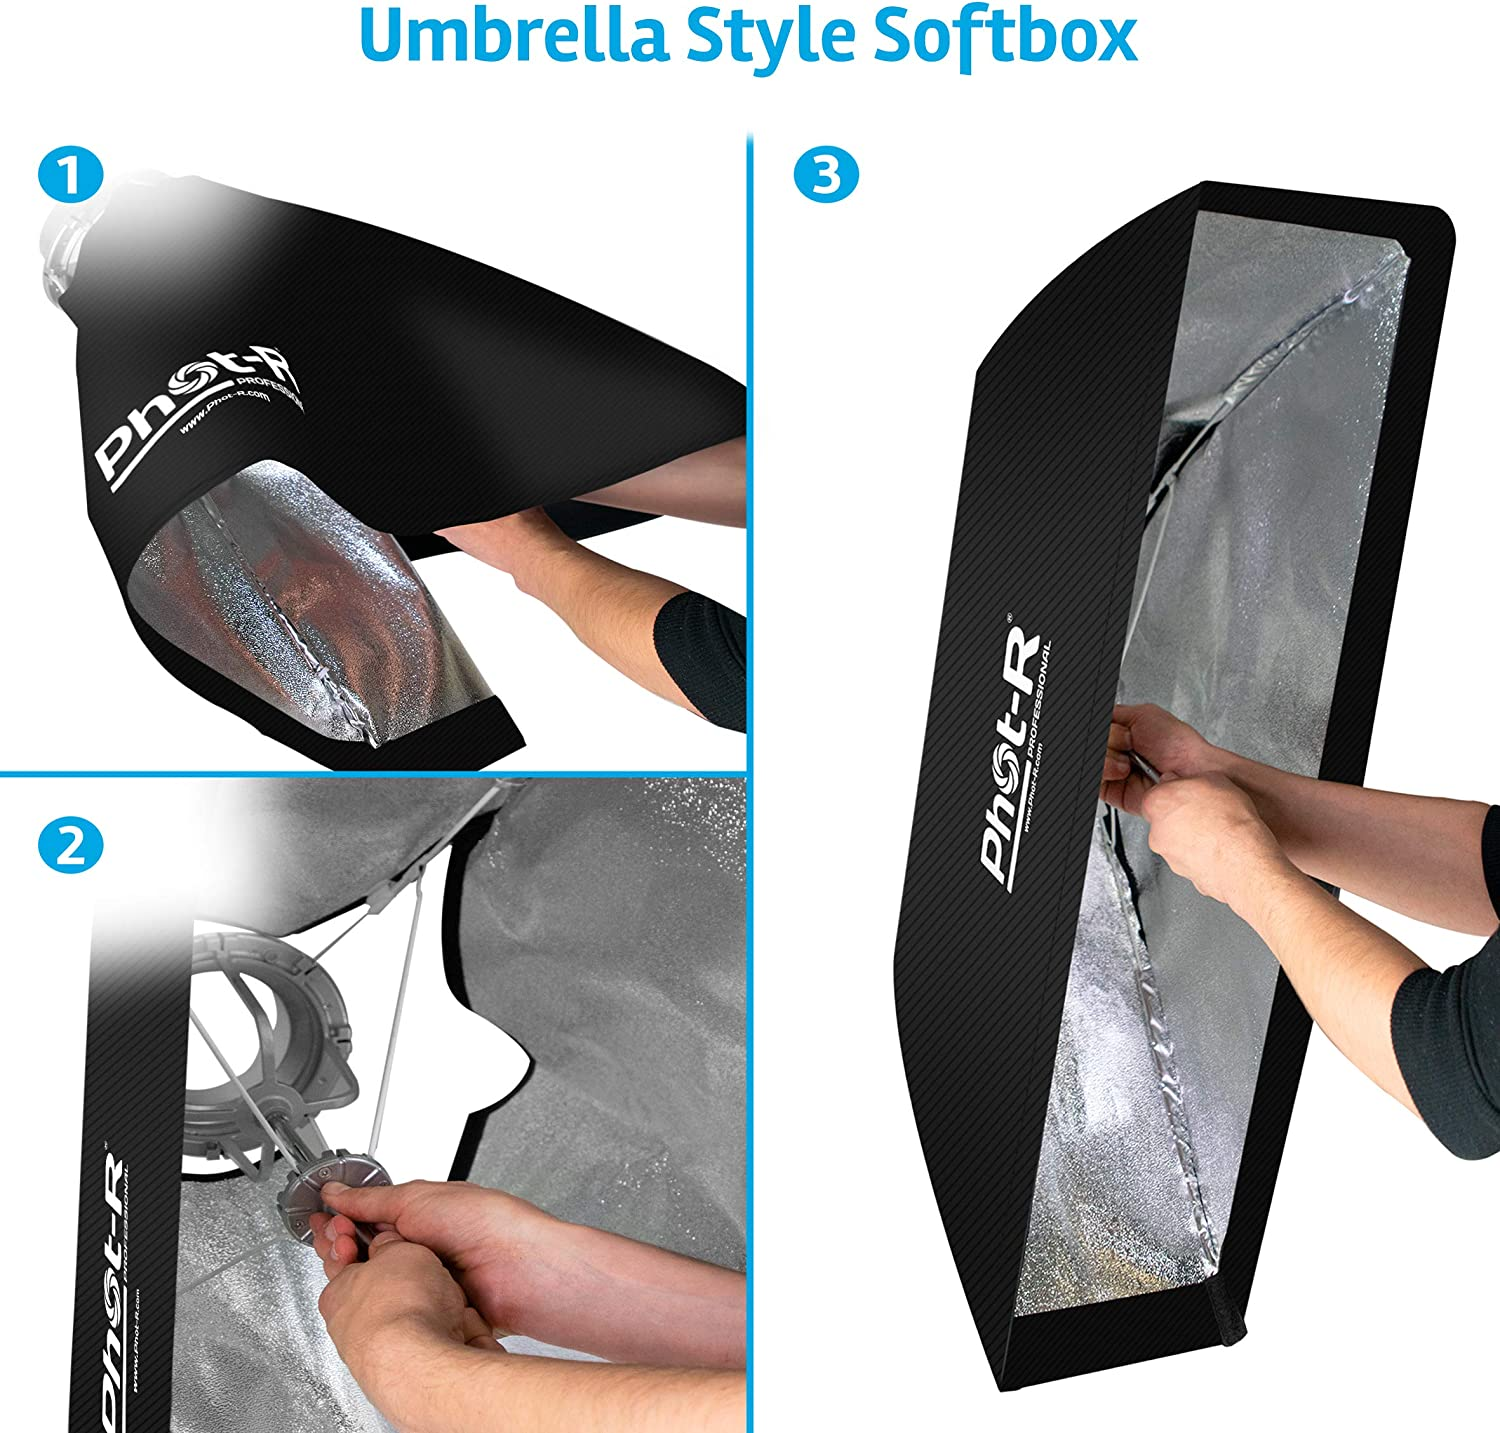 Strip Folding Umbrella Strip Softbox avec Elinchrom Mount Speedring Studio Strobe Flash 11.8x55.1 Phot-R 30x140cm